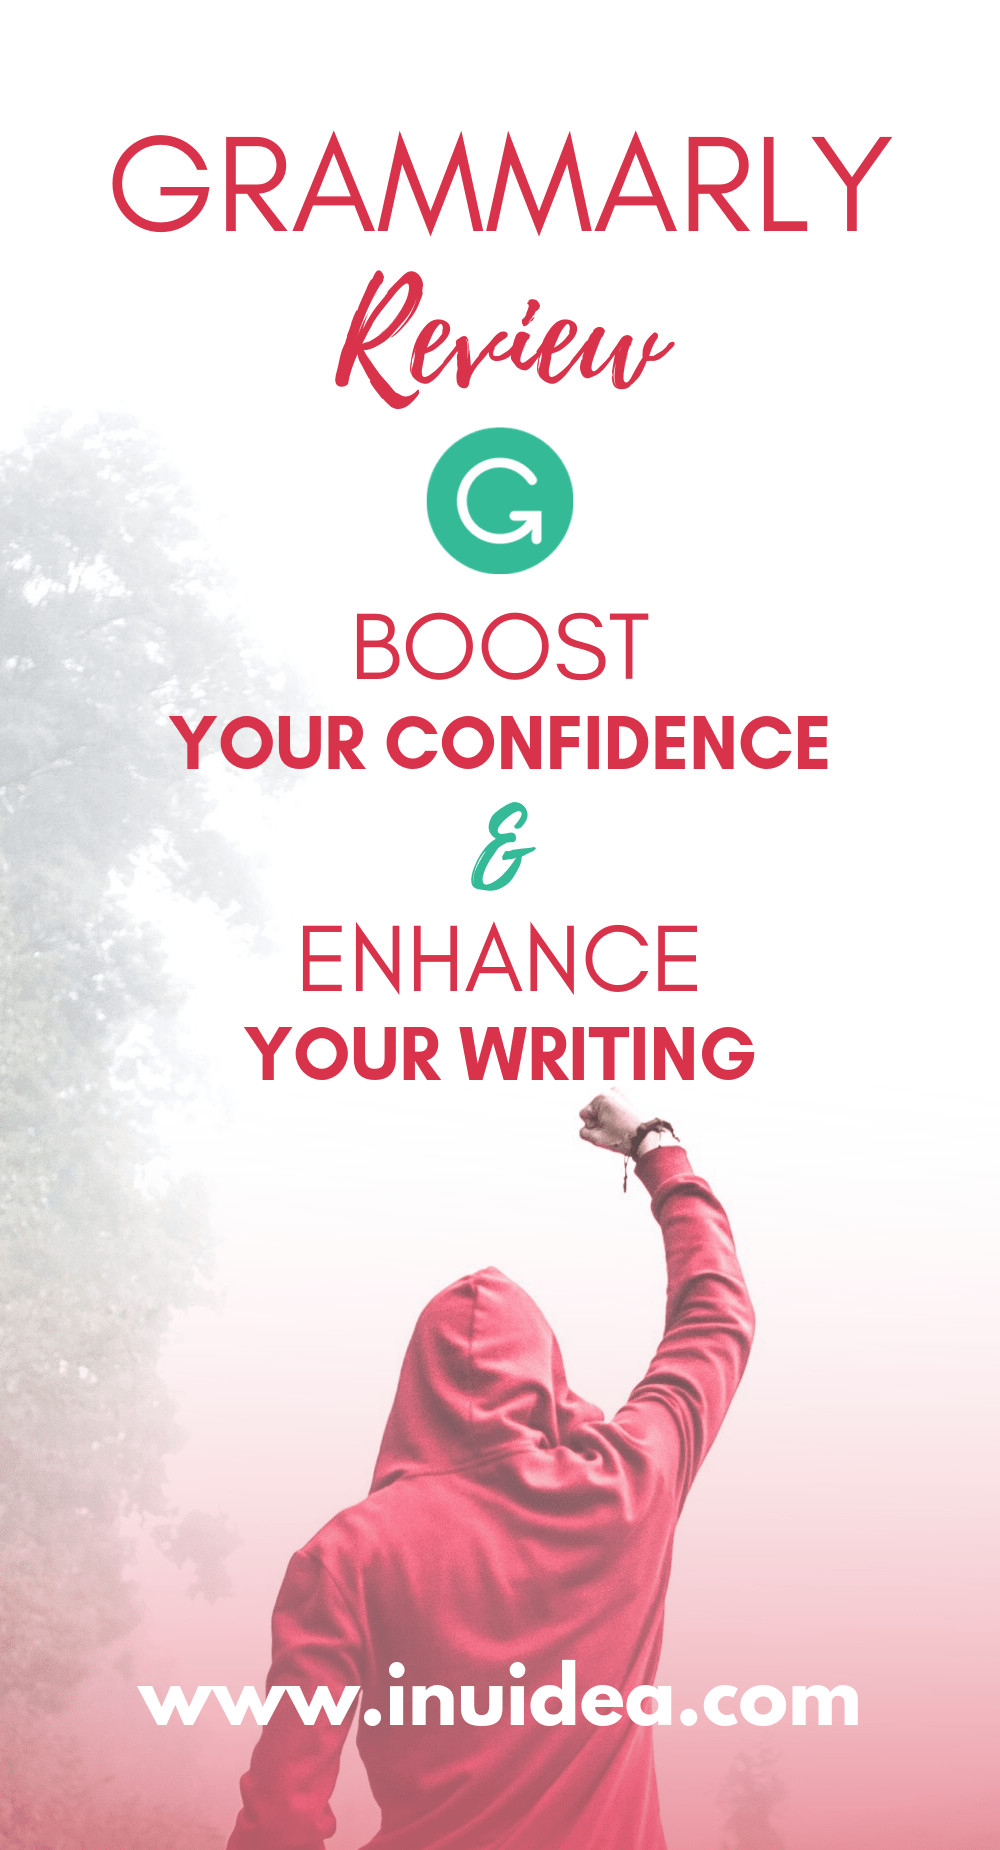 Grammarly Proofreading Software Warranty Customer Service